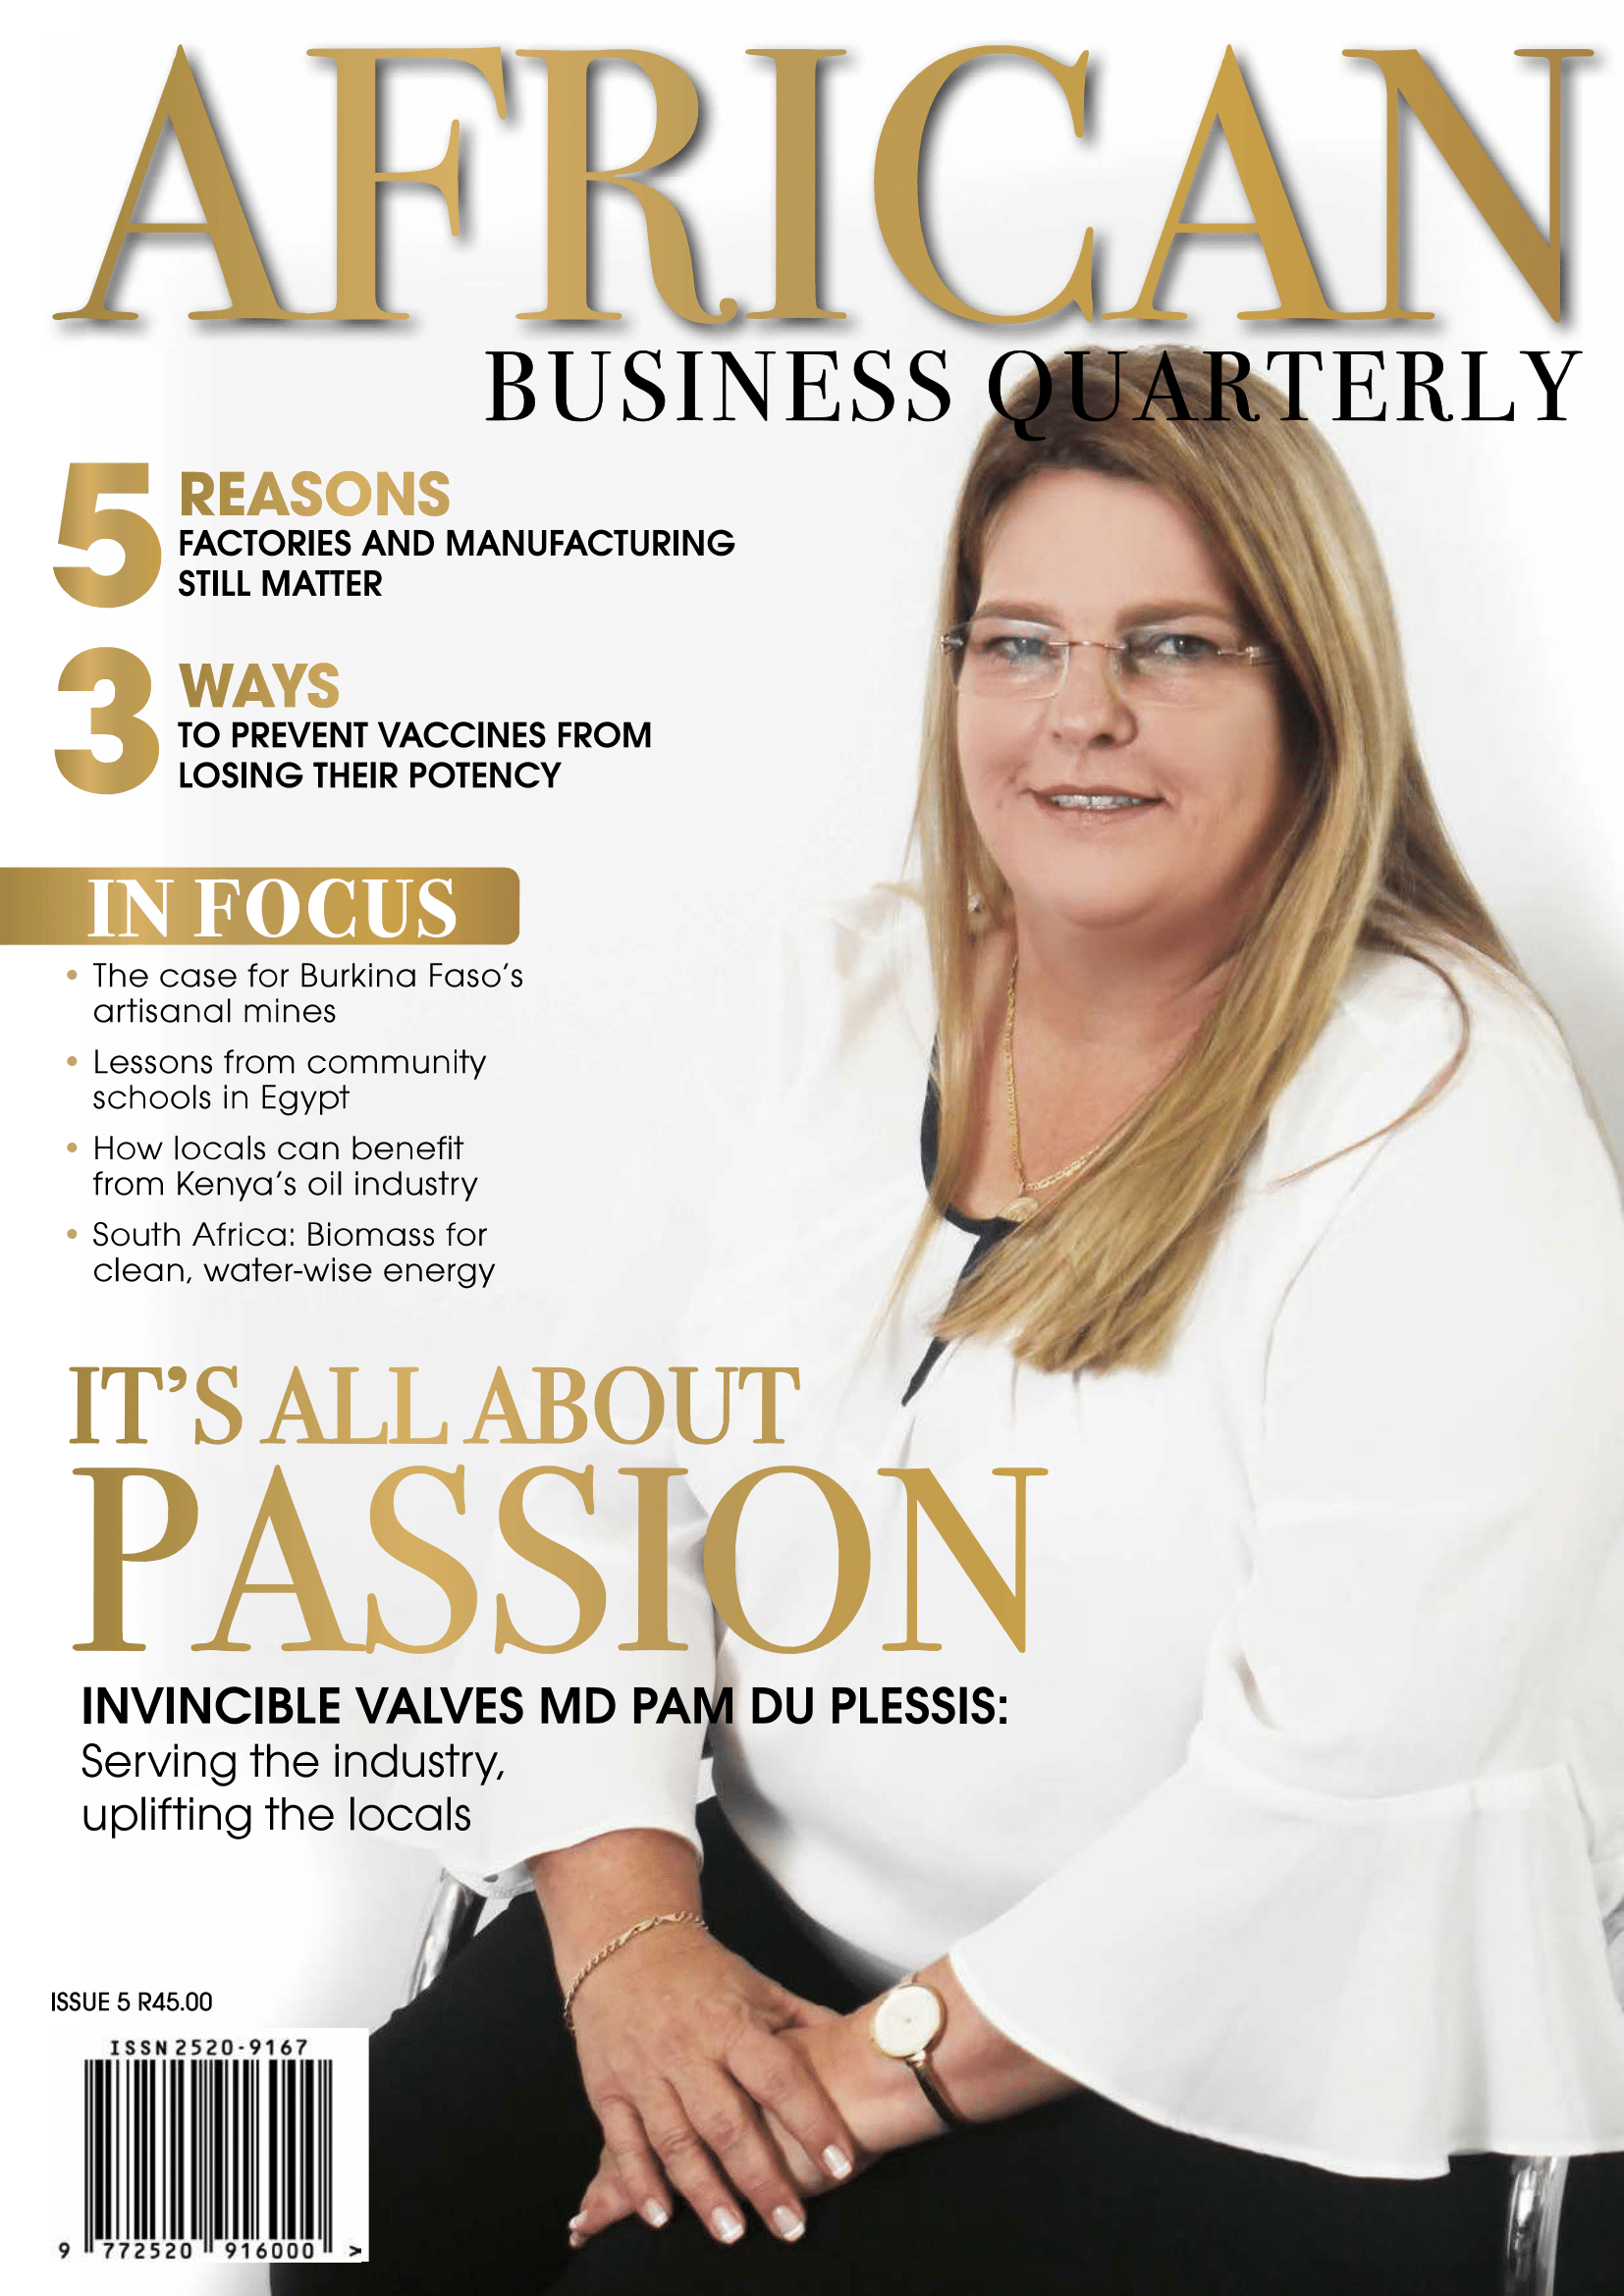 African Business Quarterly issue 5